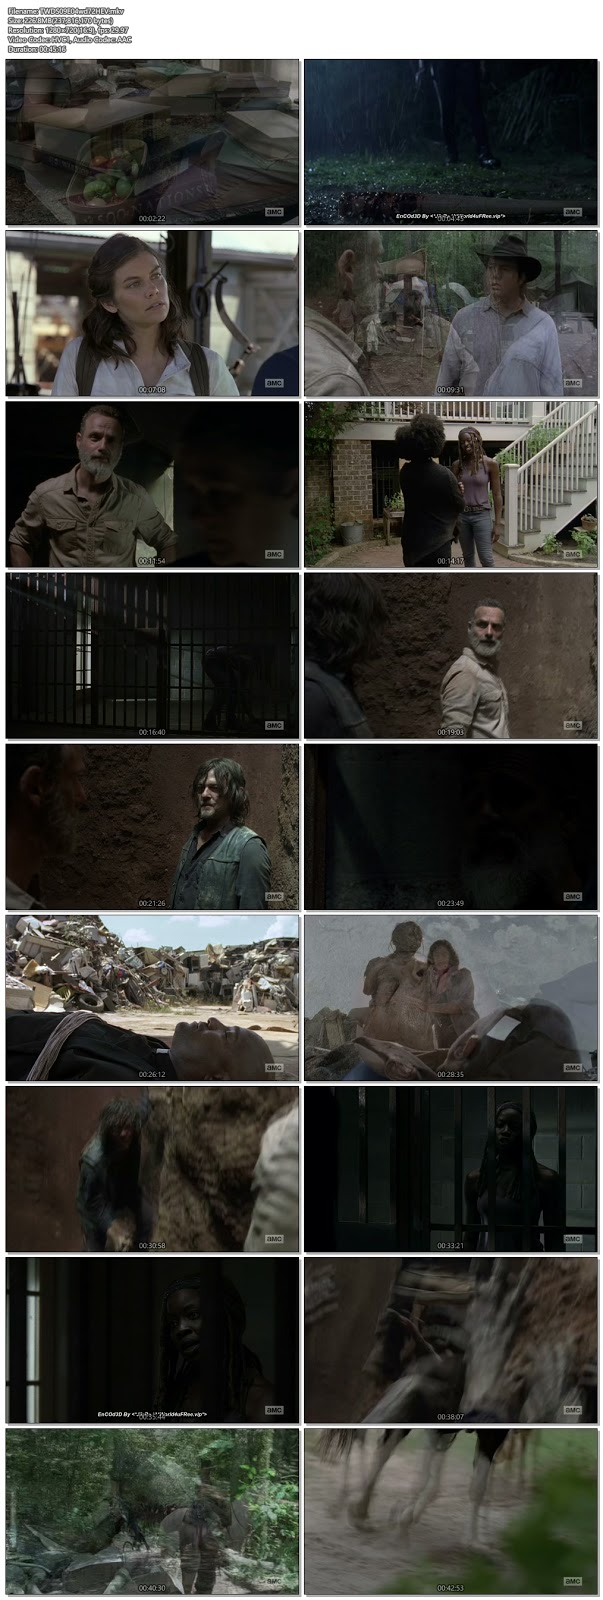 The Walking Dead S09 Episode 04 720p HDTV 200mb ESub x265 HEVC, hollwood tv series The walking dead 2018 720p hdtv tv show hevc x265 hdrip 250mb 270mb free download or watch online at world4ufree.fun